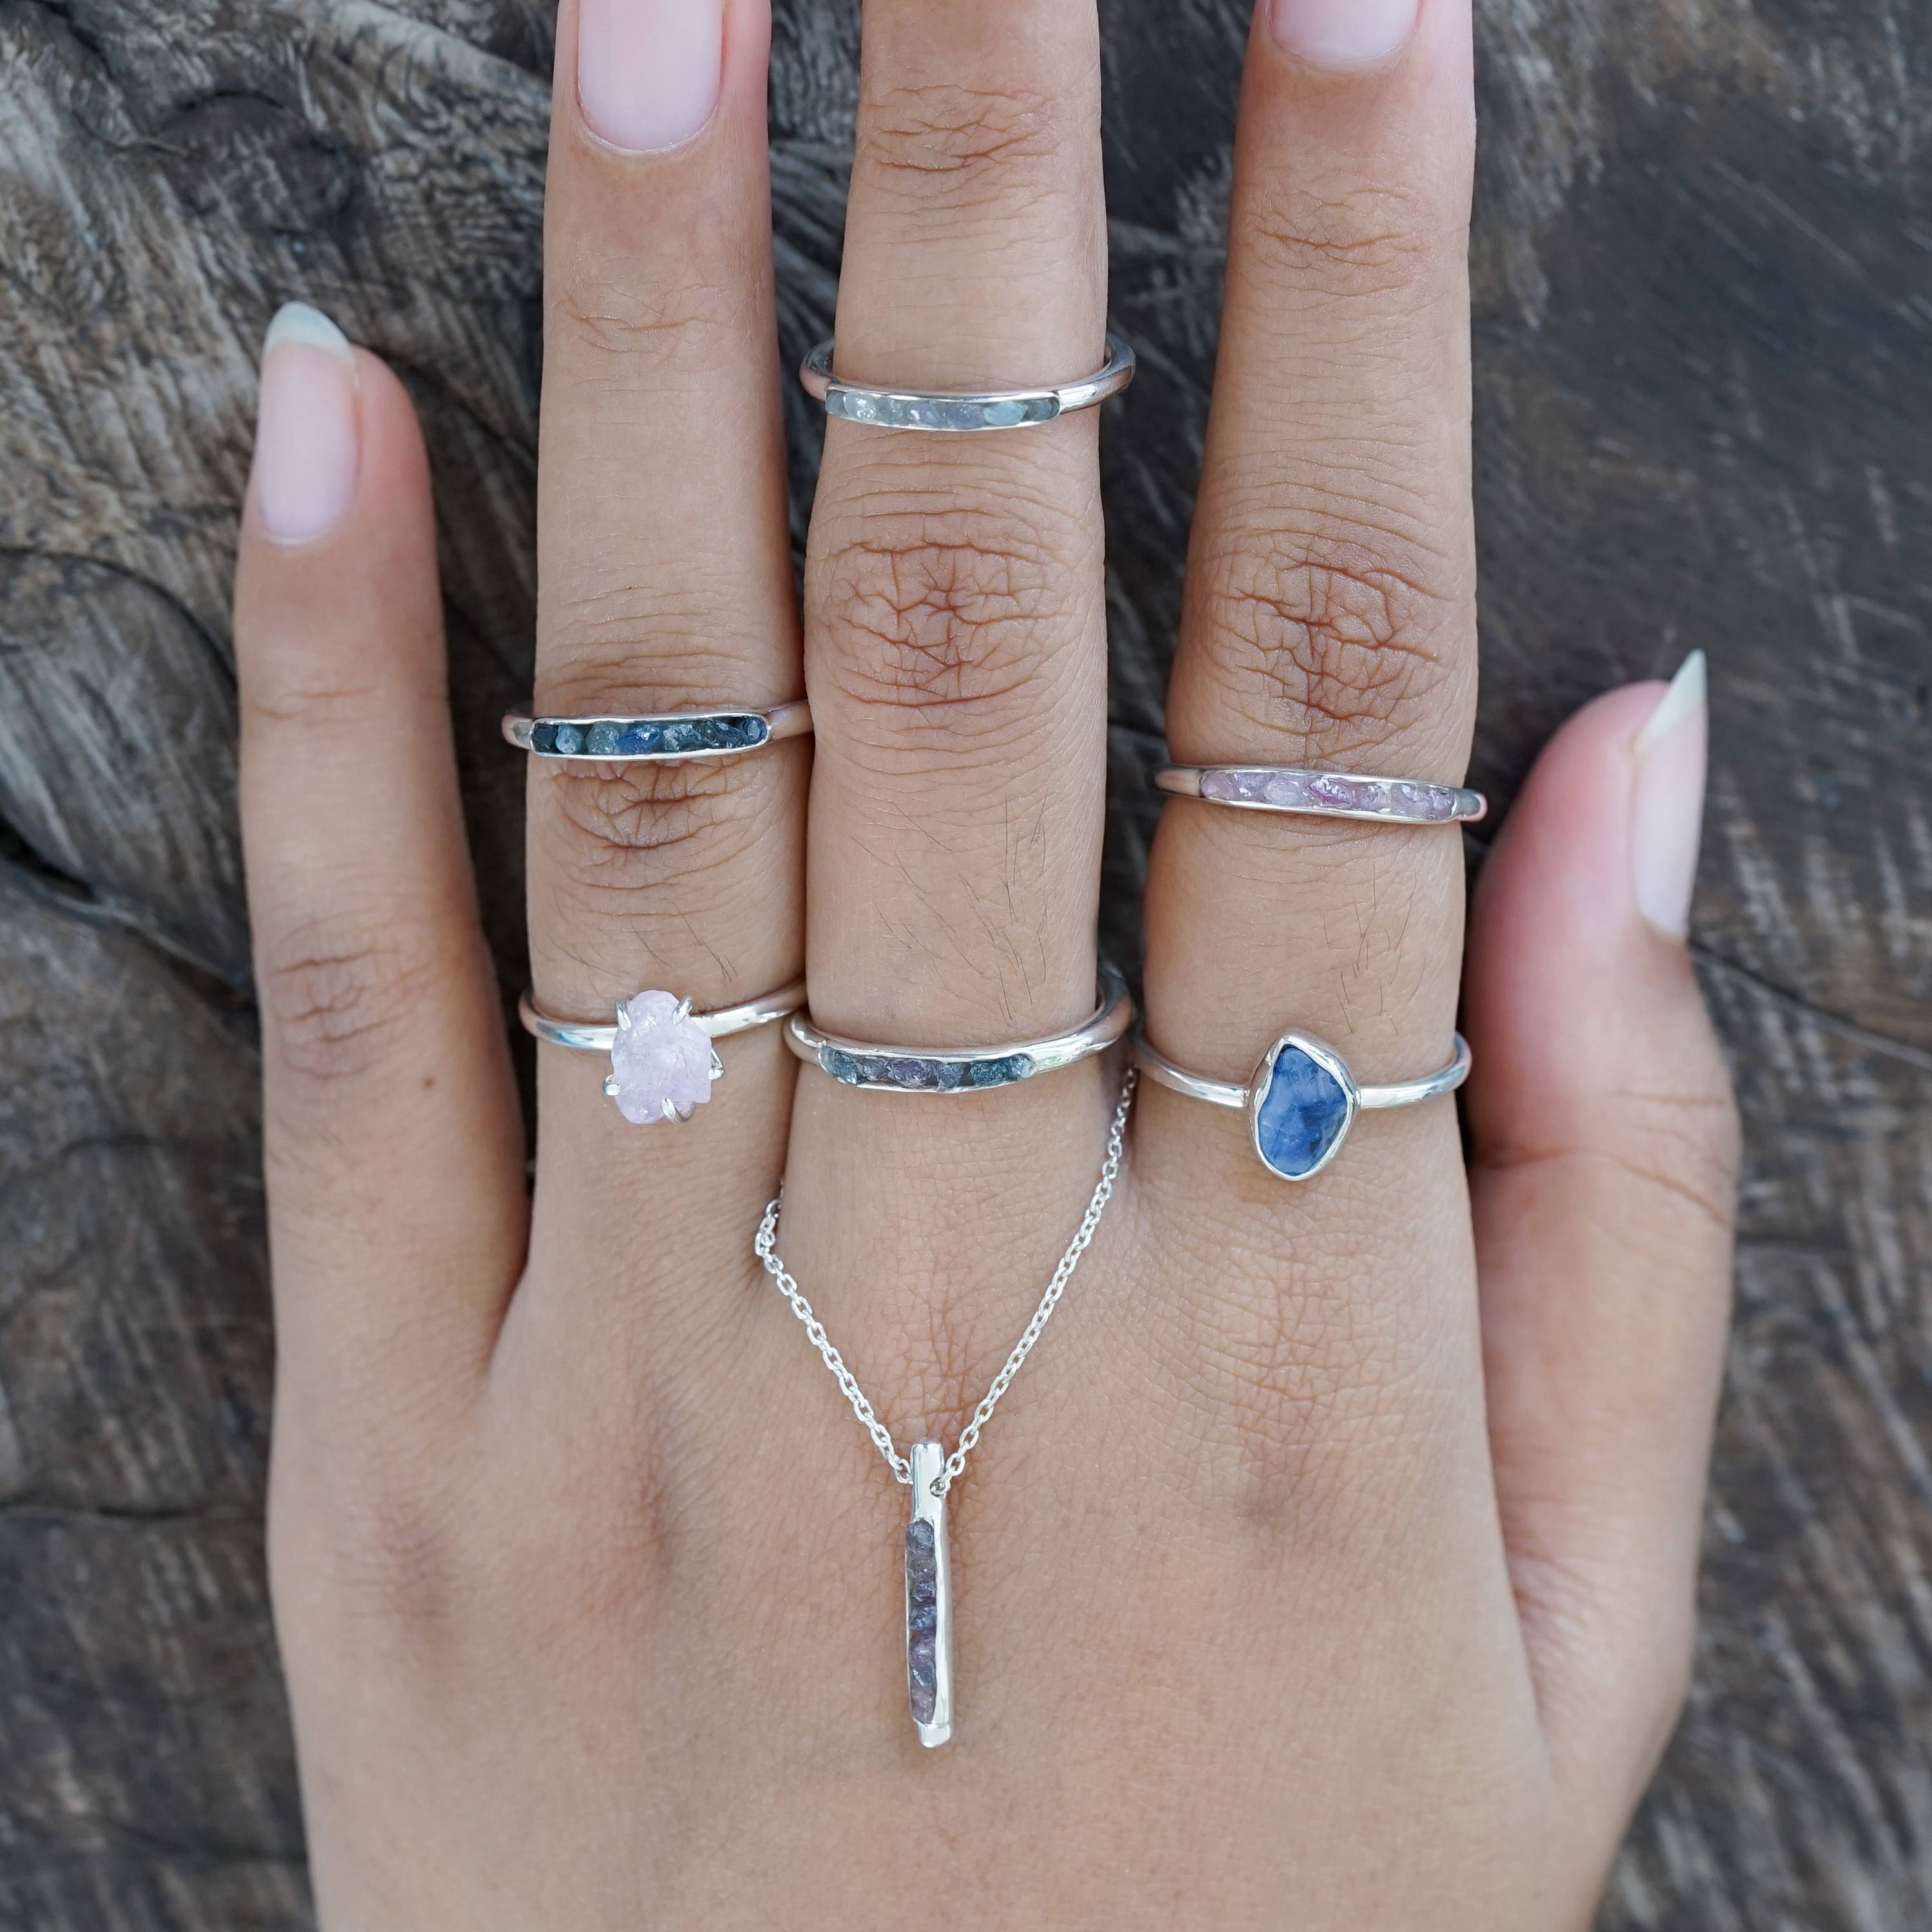 Borneo Gems collection rings and necklace in silver